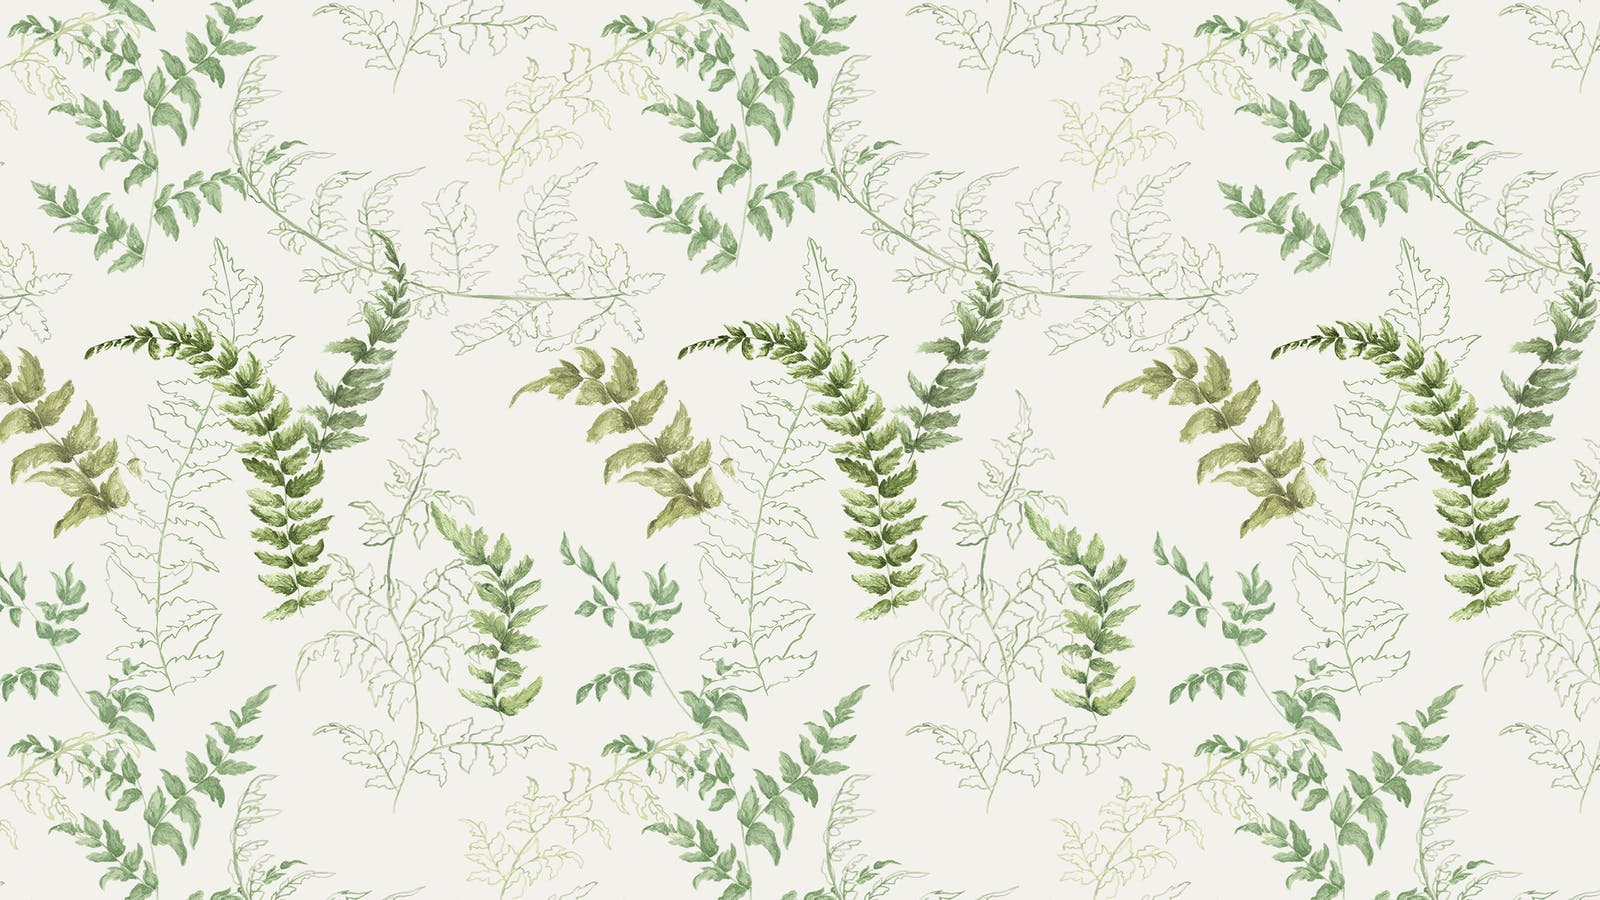 Lick x Jenna Hewitt Fern 01 green botanical wallpaper